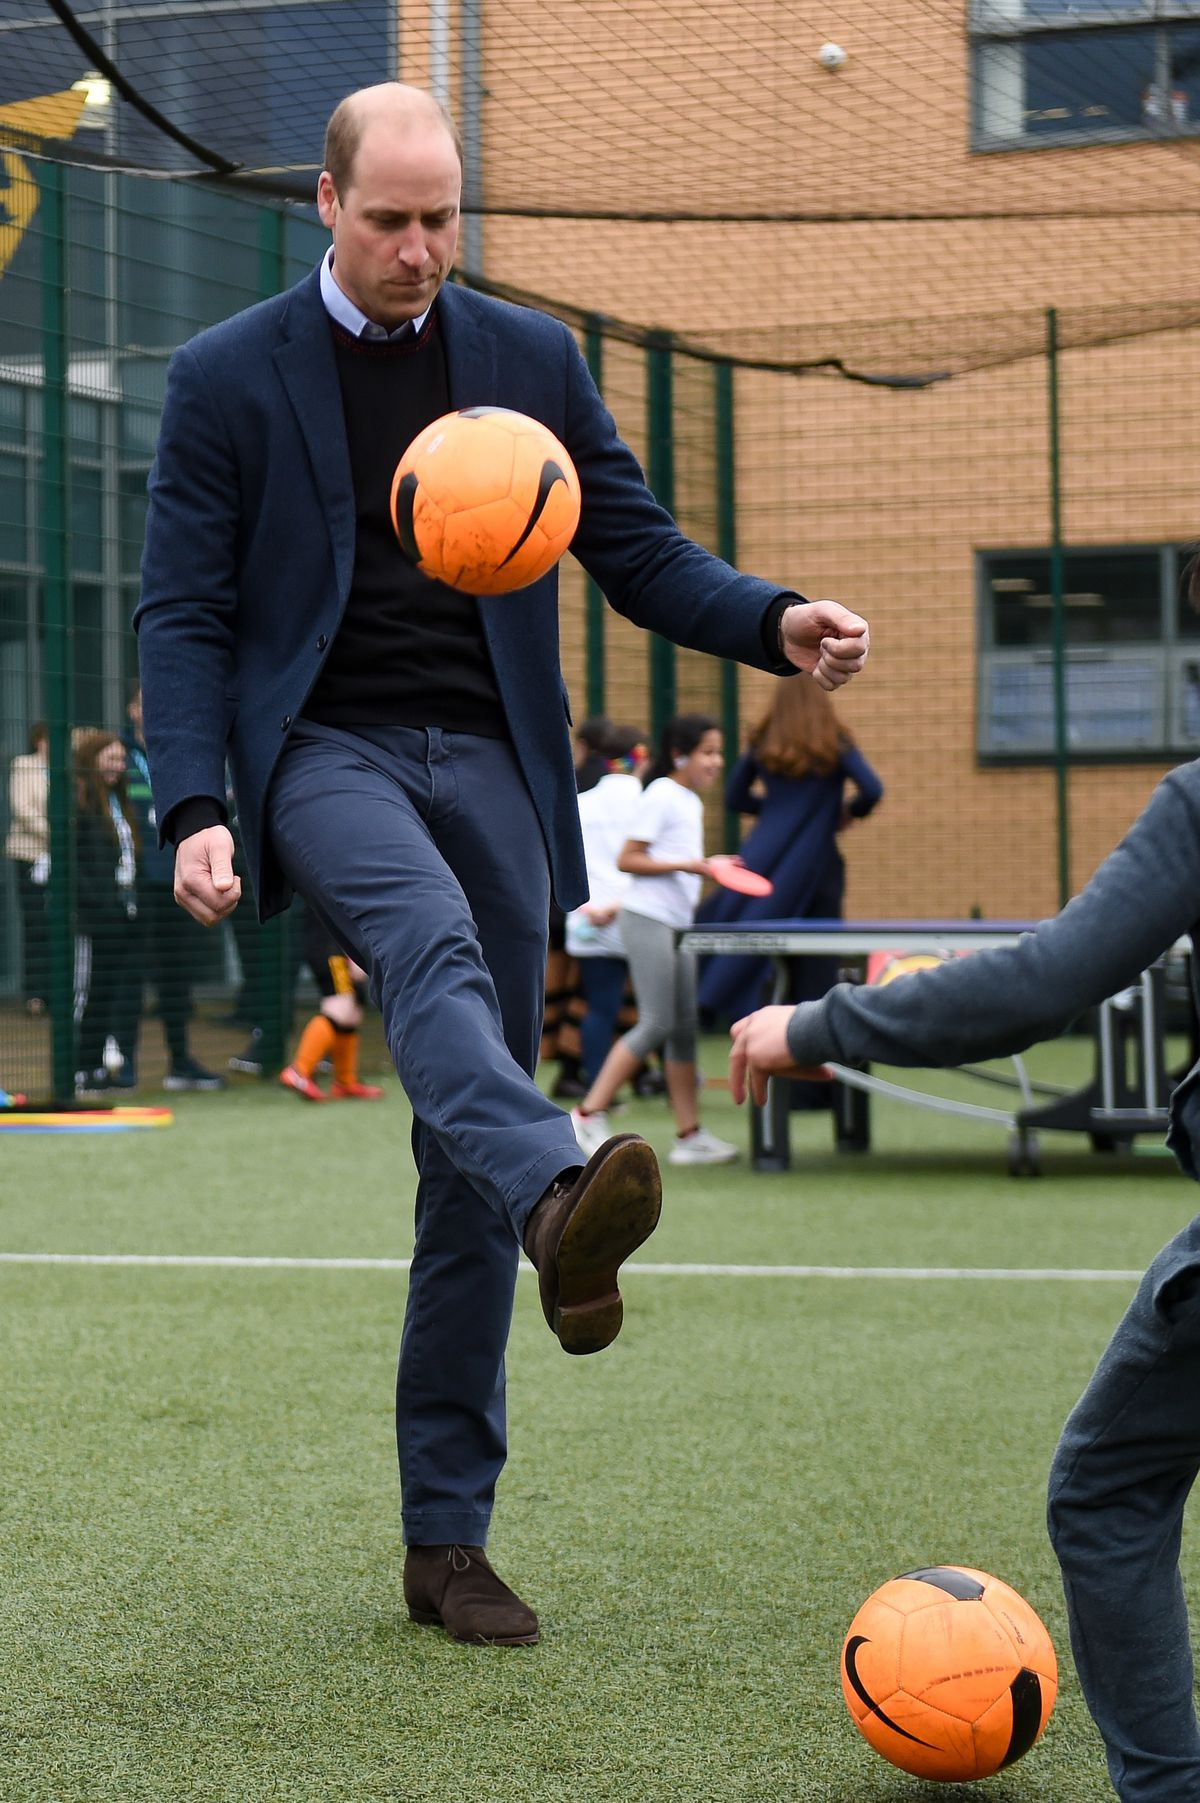 Keepy uppy from Prince William